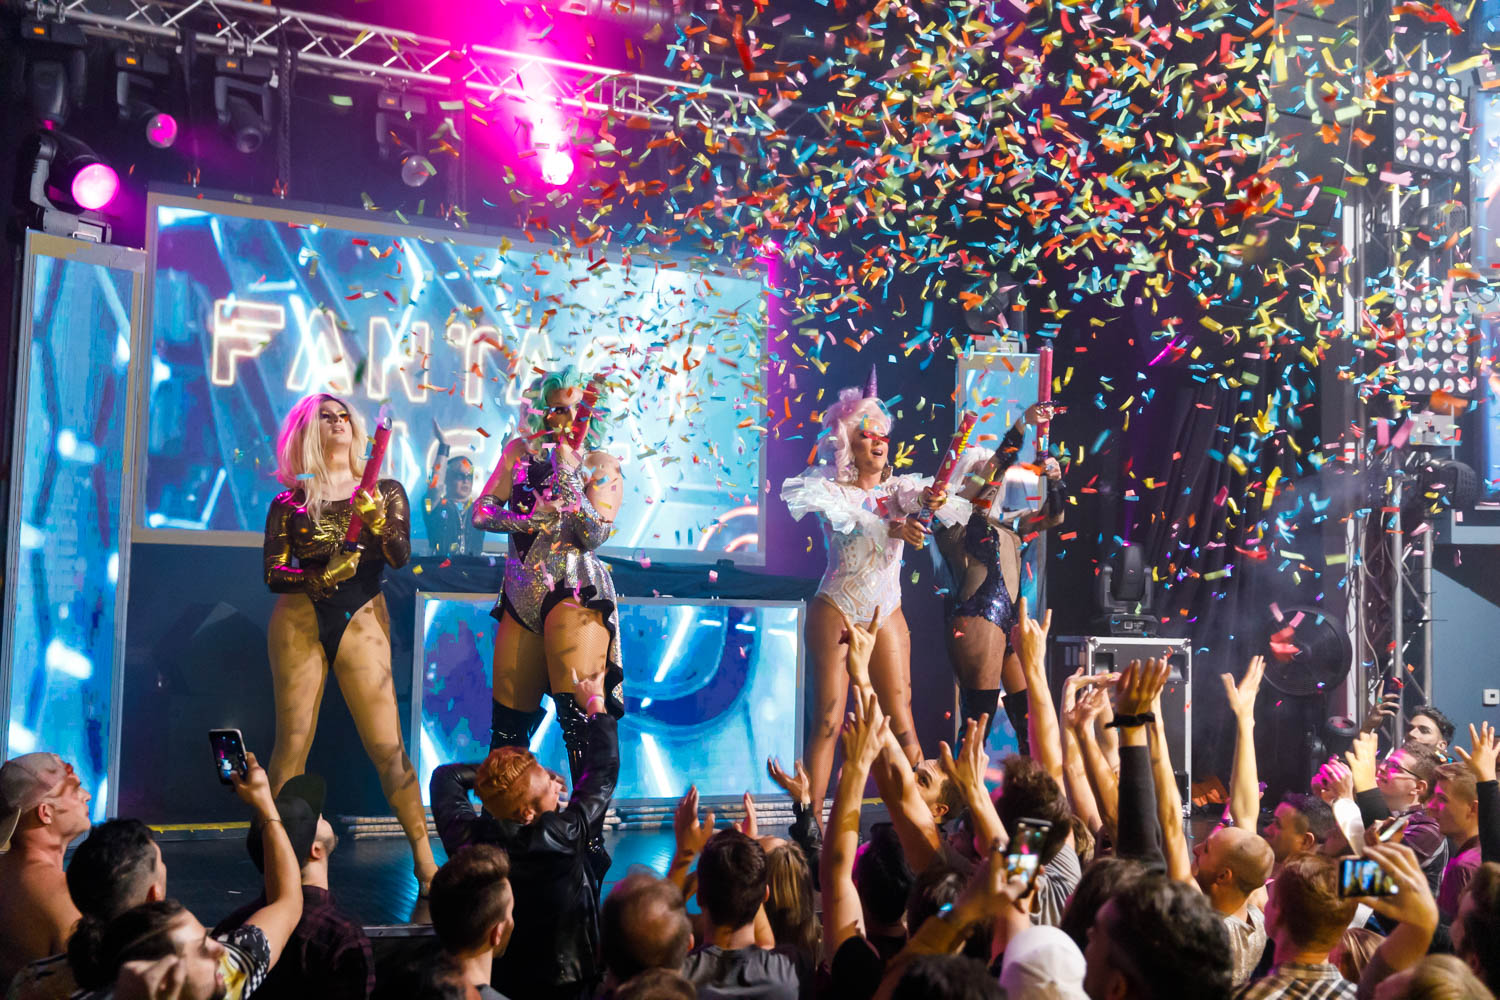 Drag queens shoot confetti